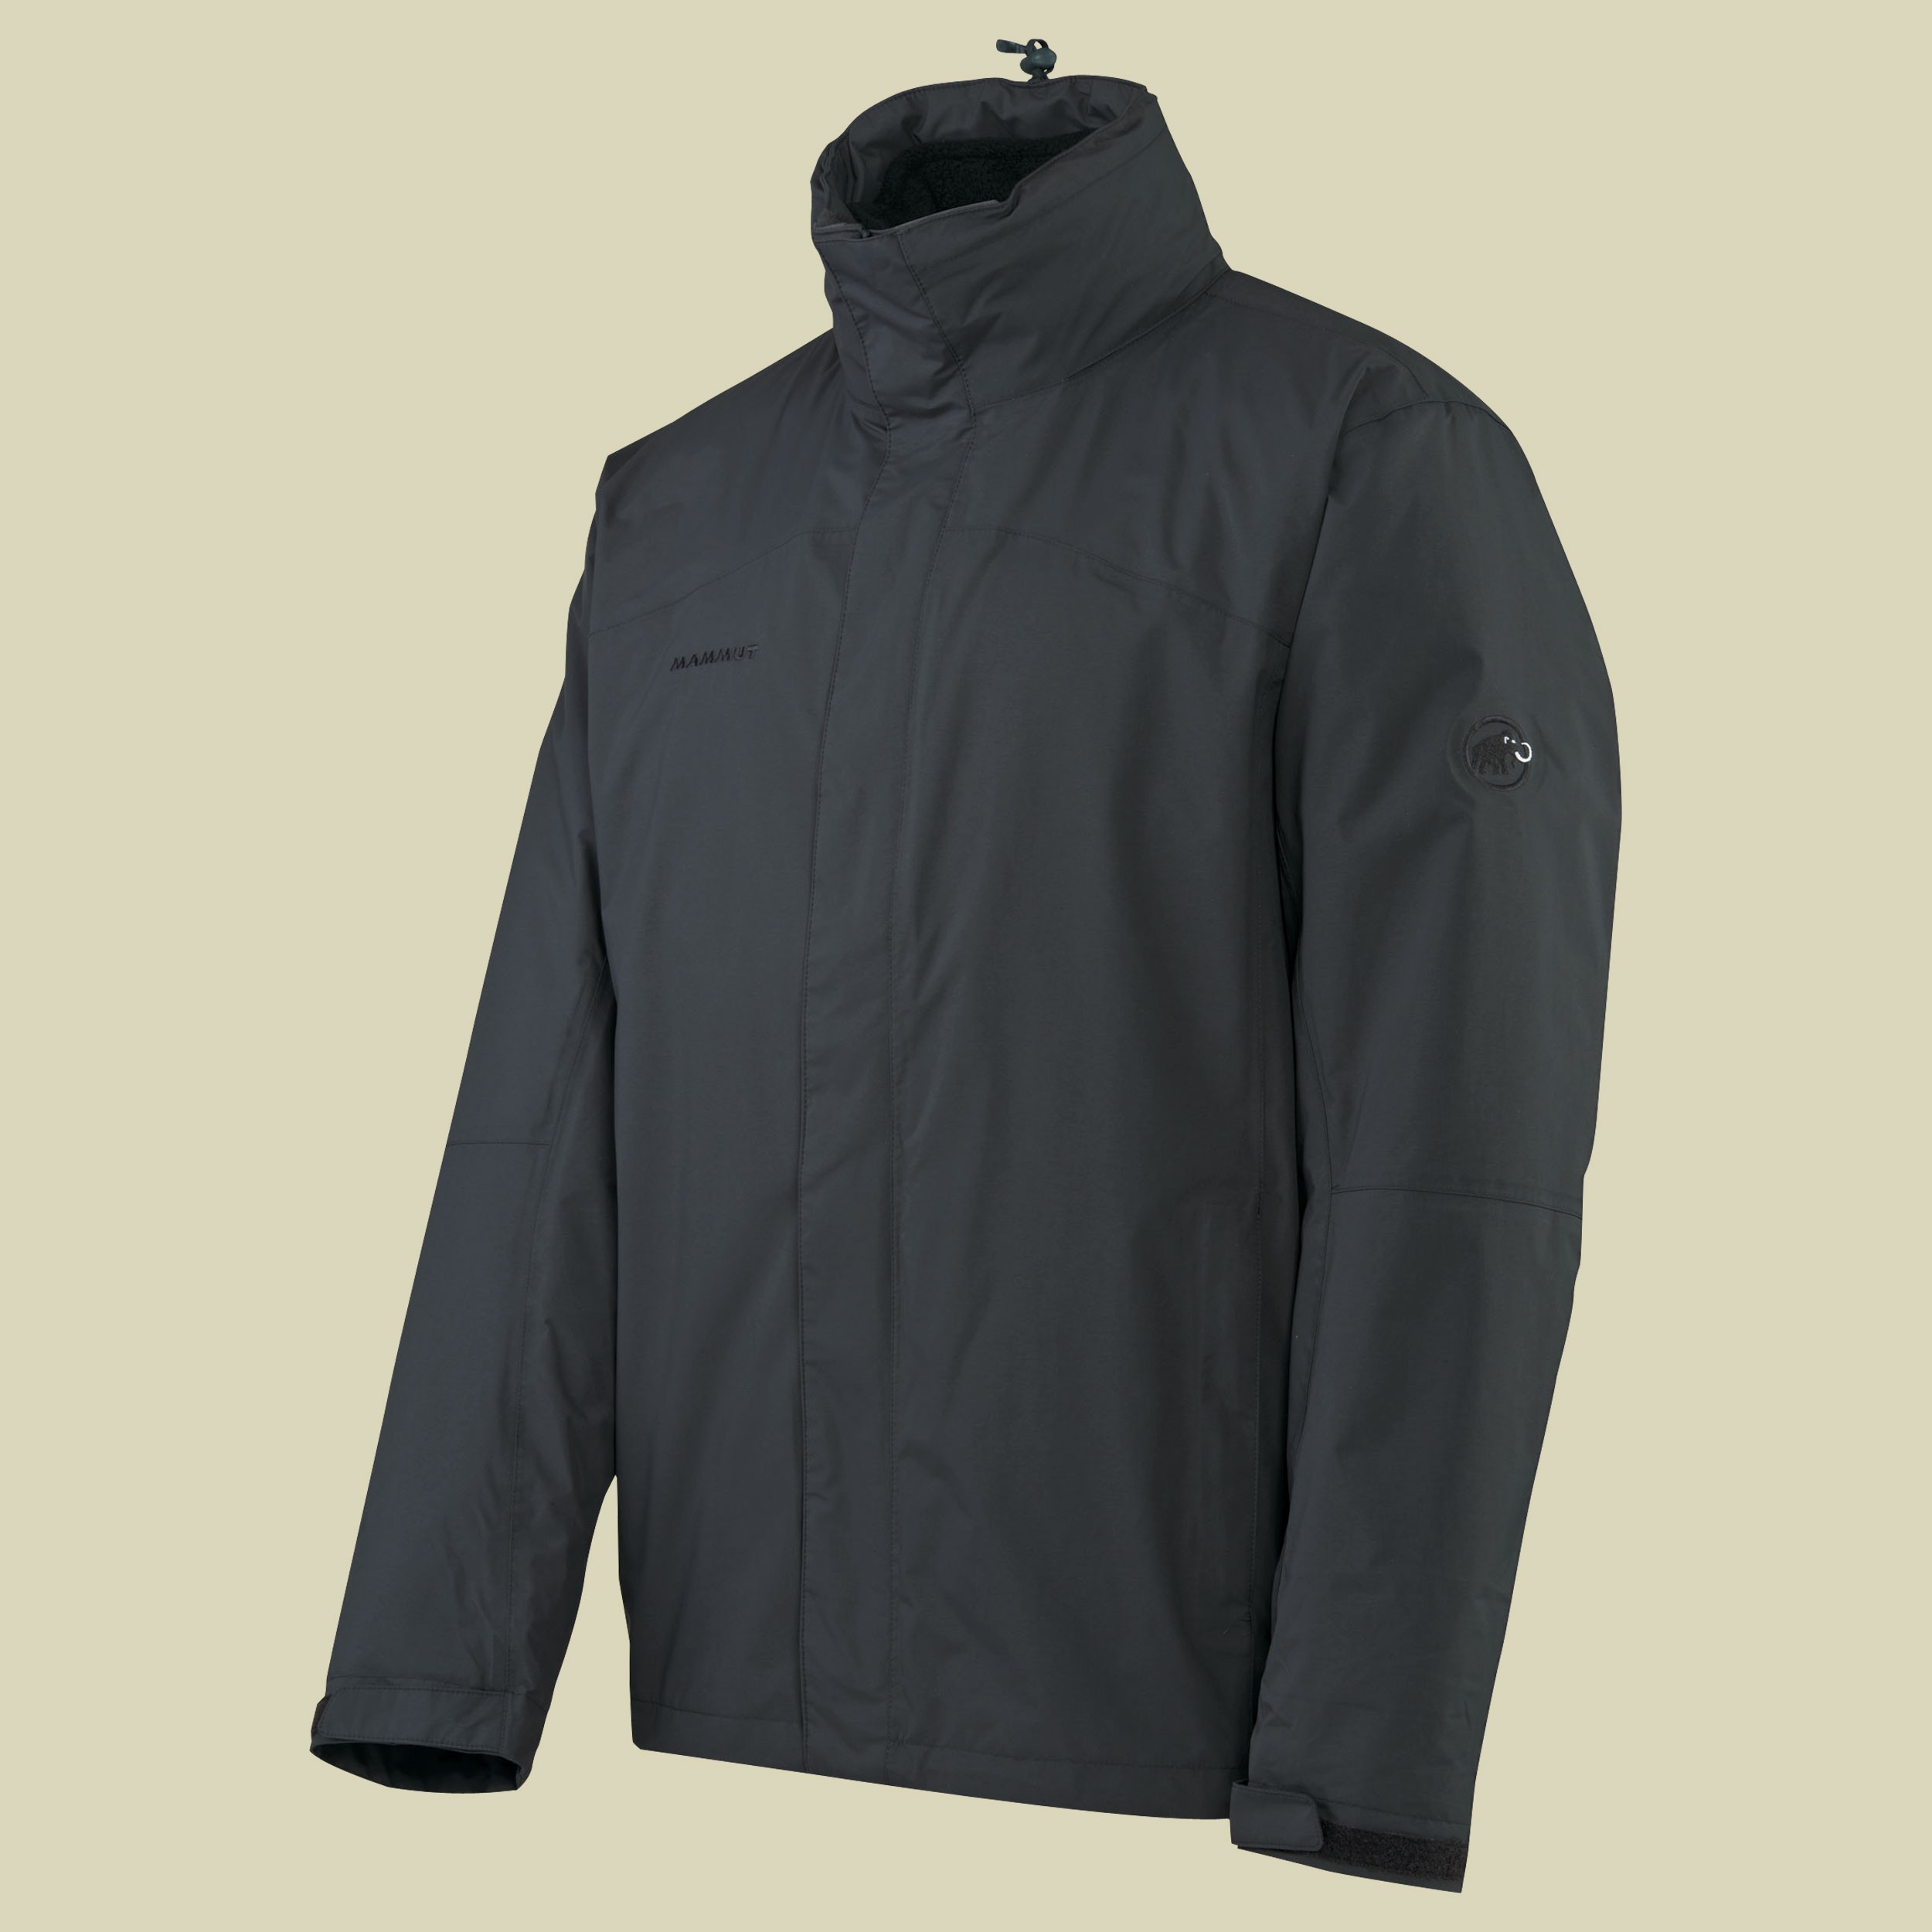 Sincon 2-S Jacket Men